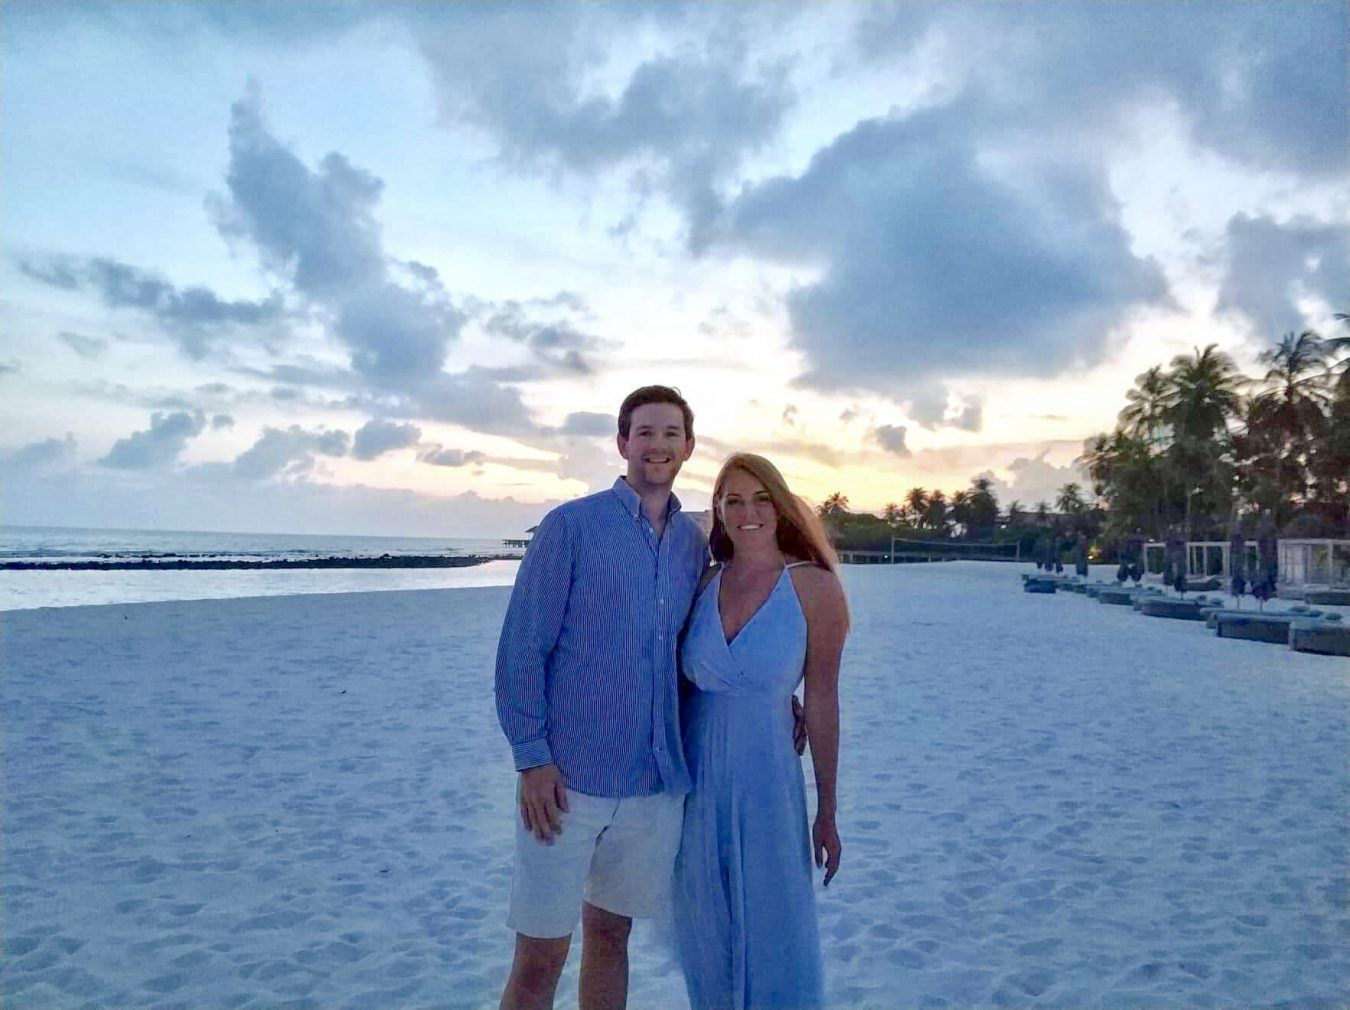 Maja and her husband on honeymoon